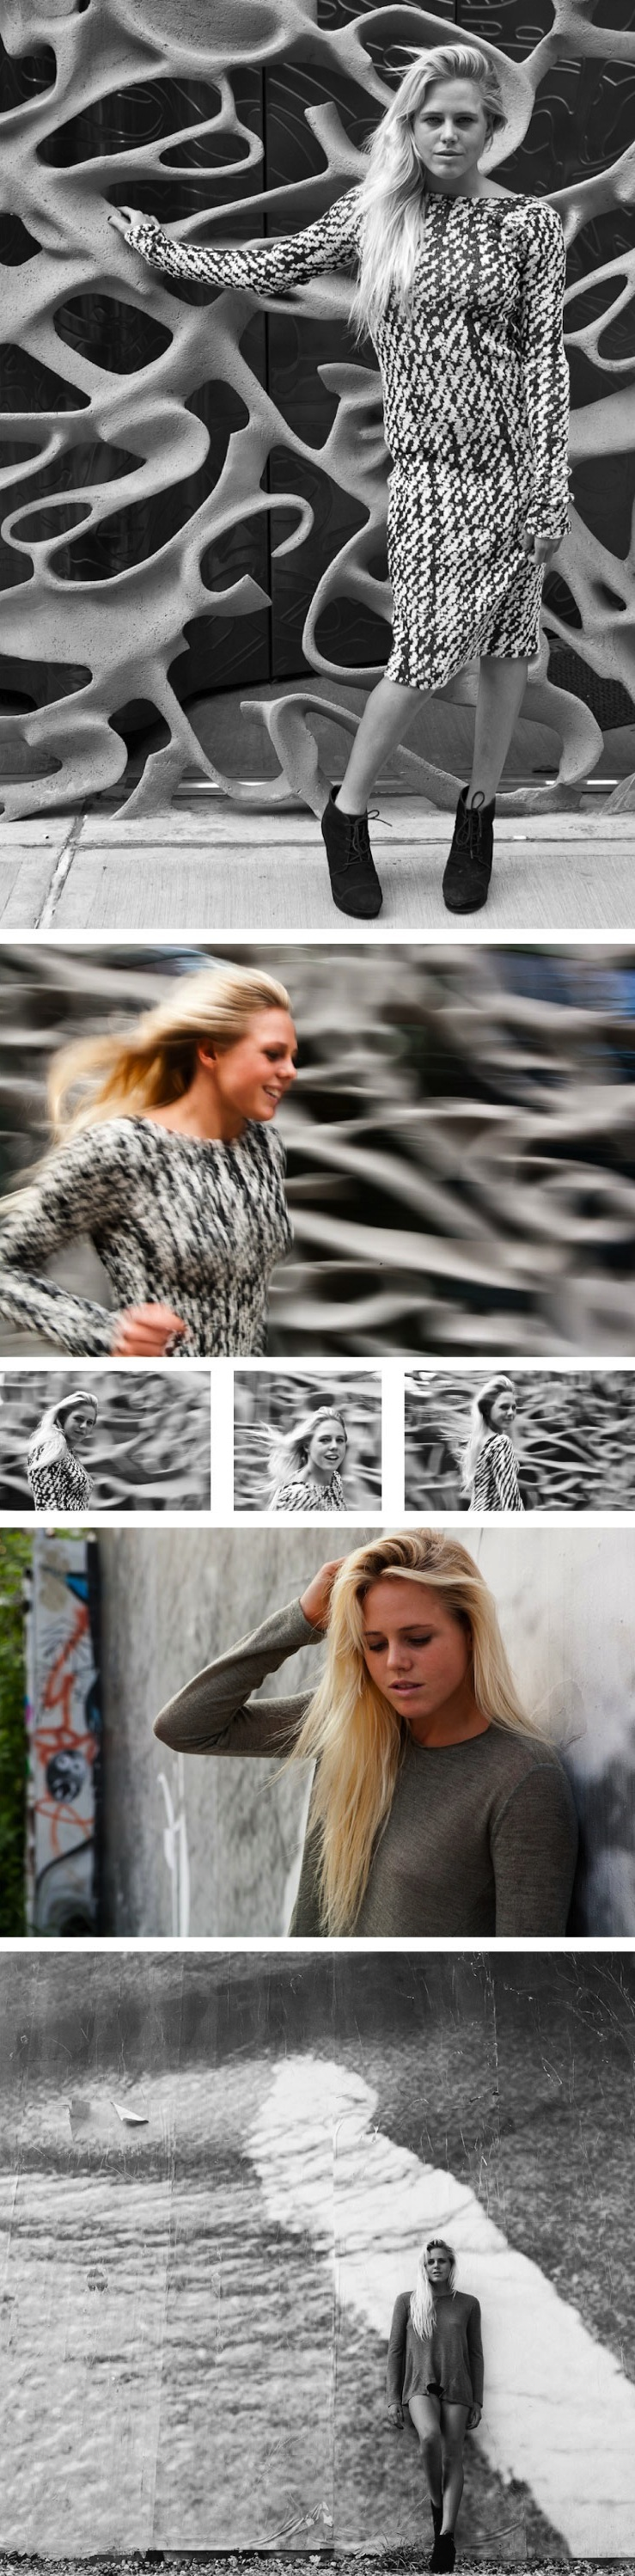 Laura-Enever+Surf-Collective-NYC+photo-shoot1